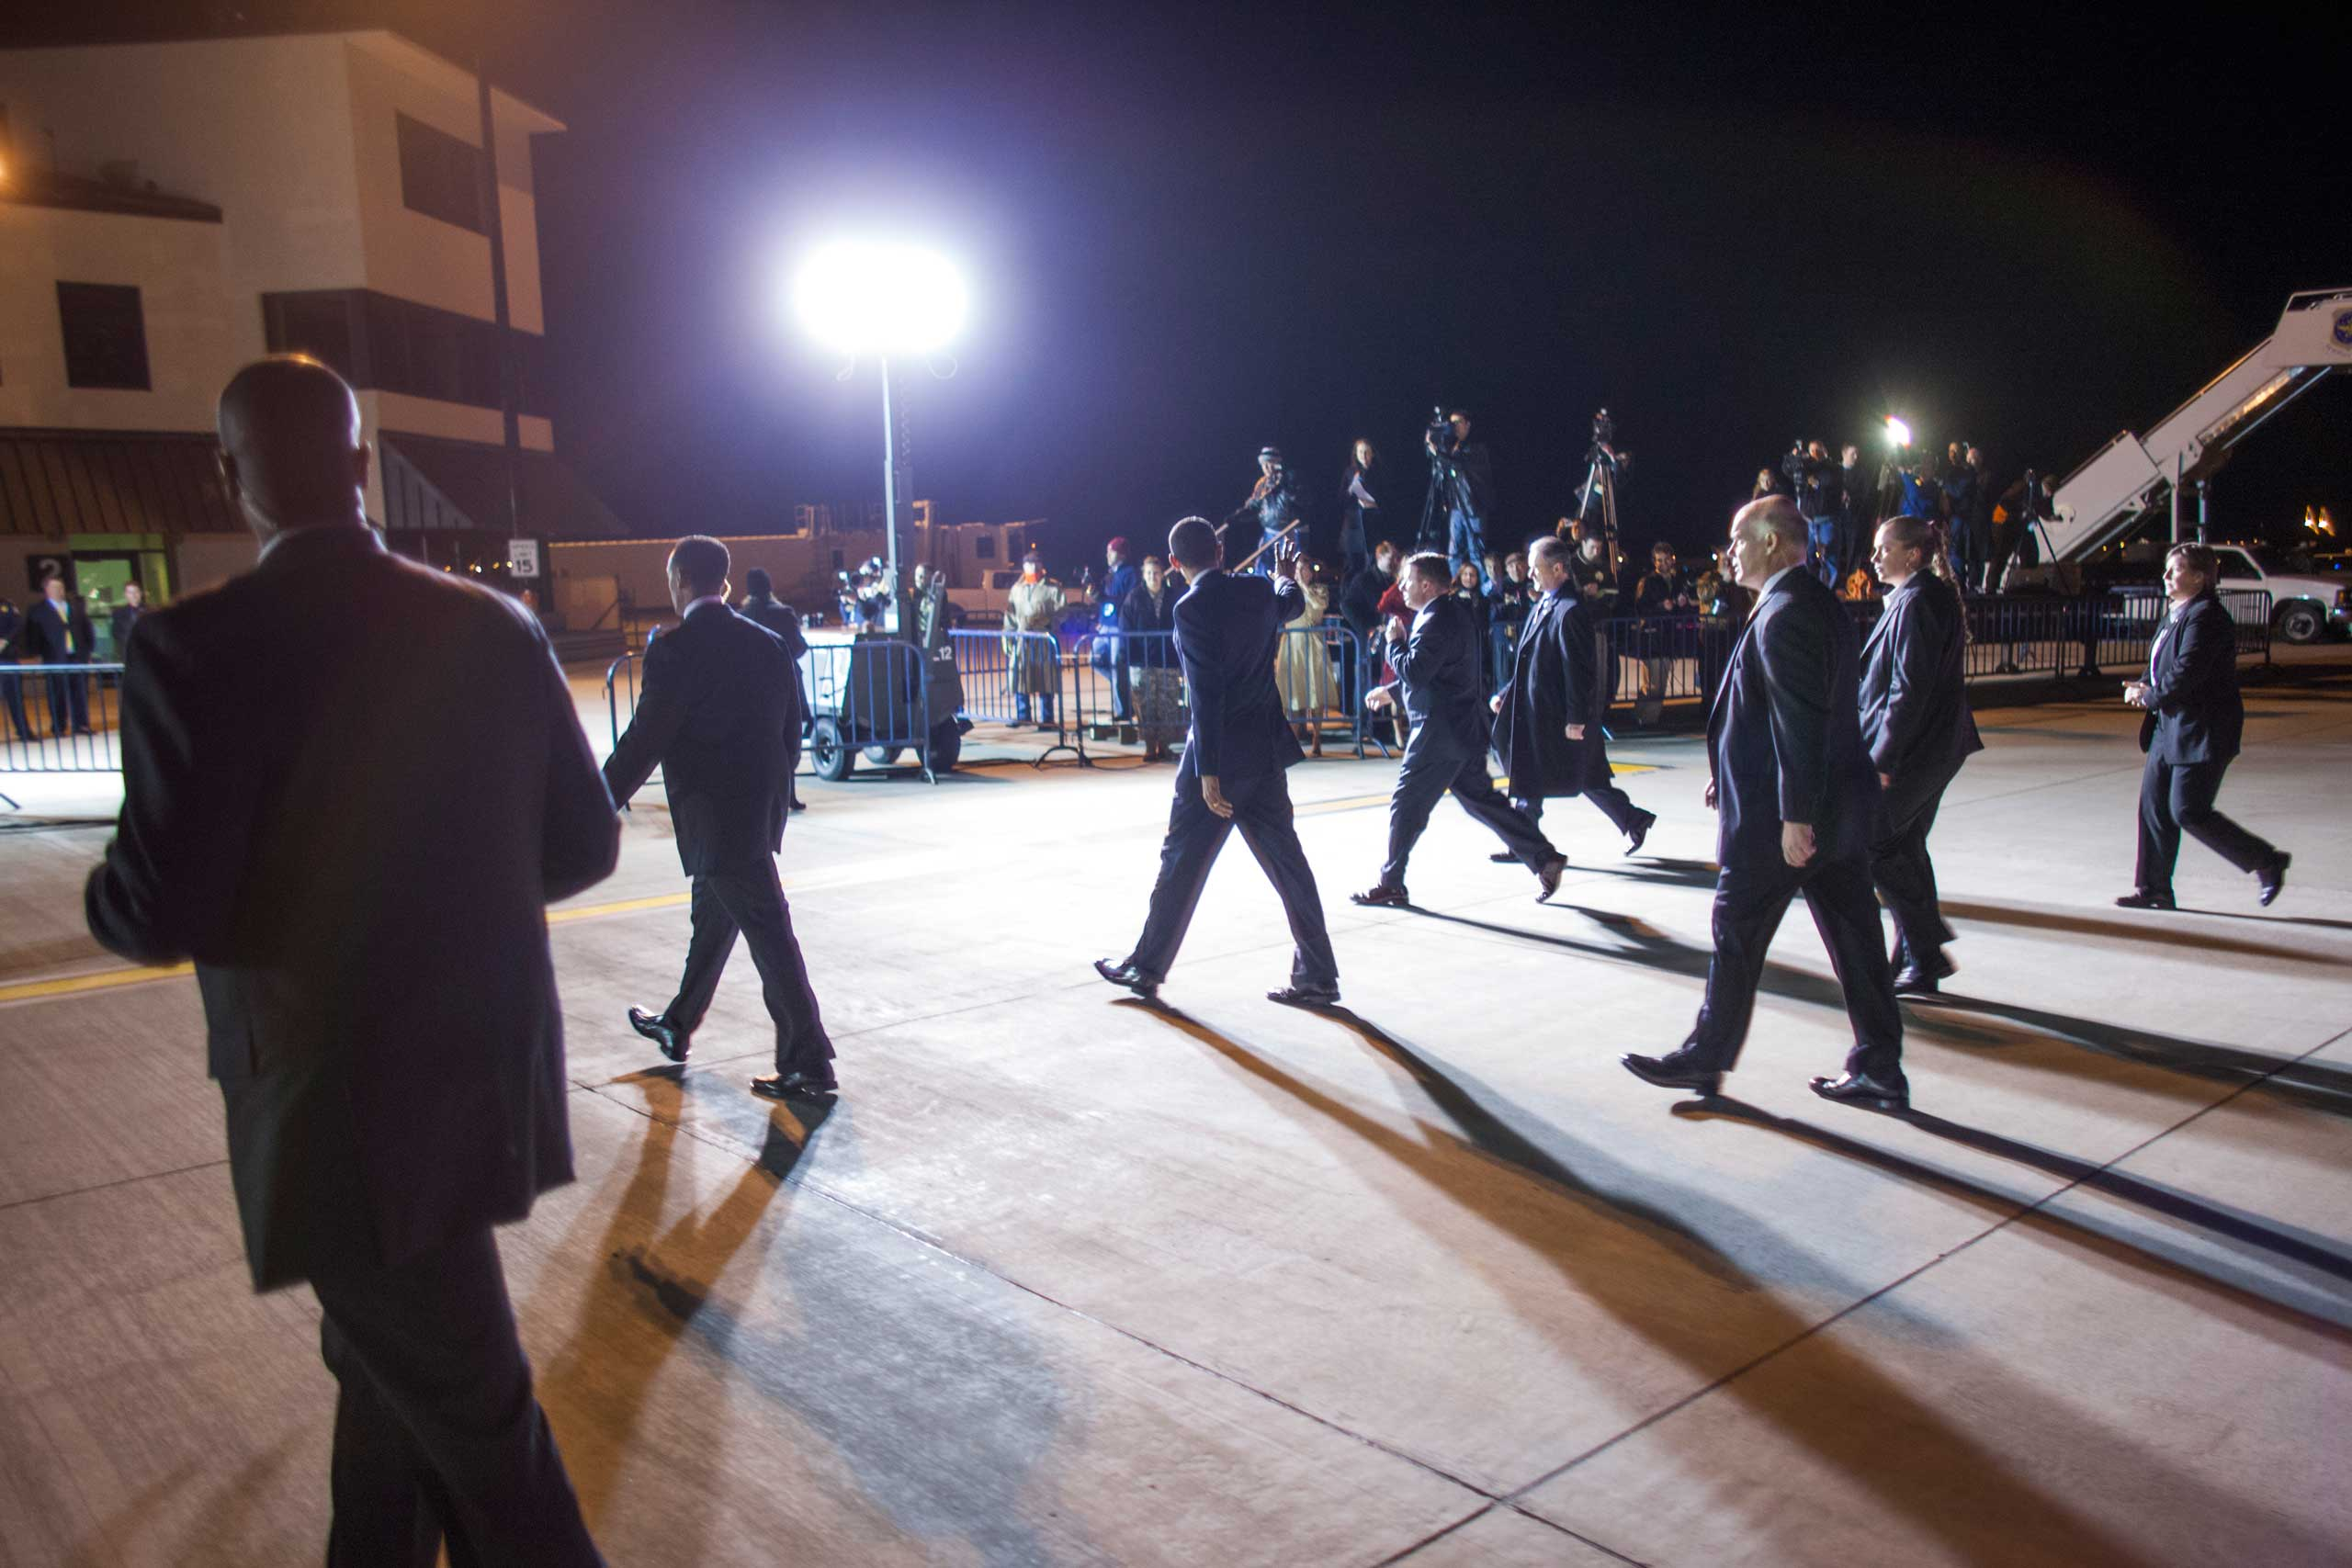 A flood of bright lights fall on Clancy and other agents as the President waves to press watching the arrival of Air Force One in Springfield, Ill. on Feb. 12, 2009.